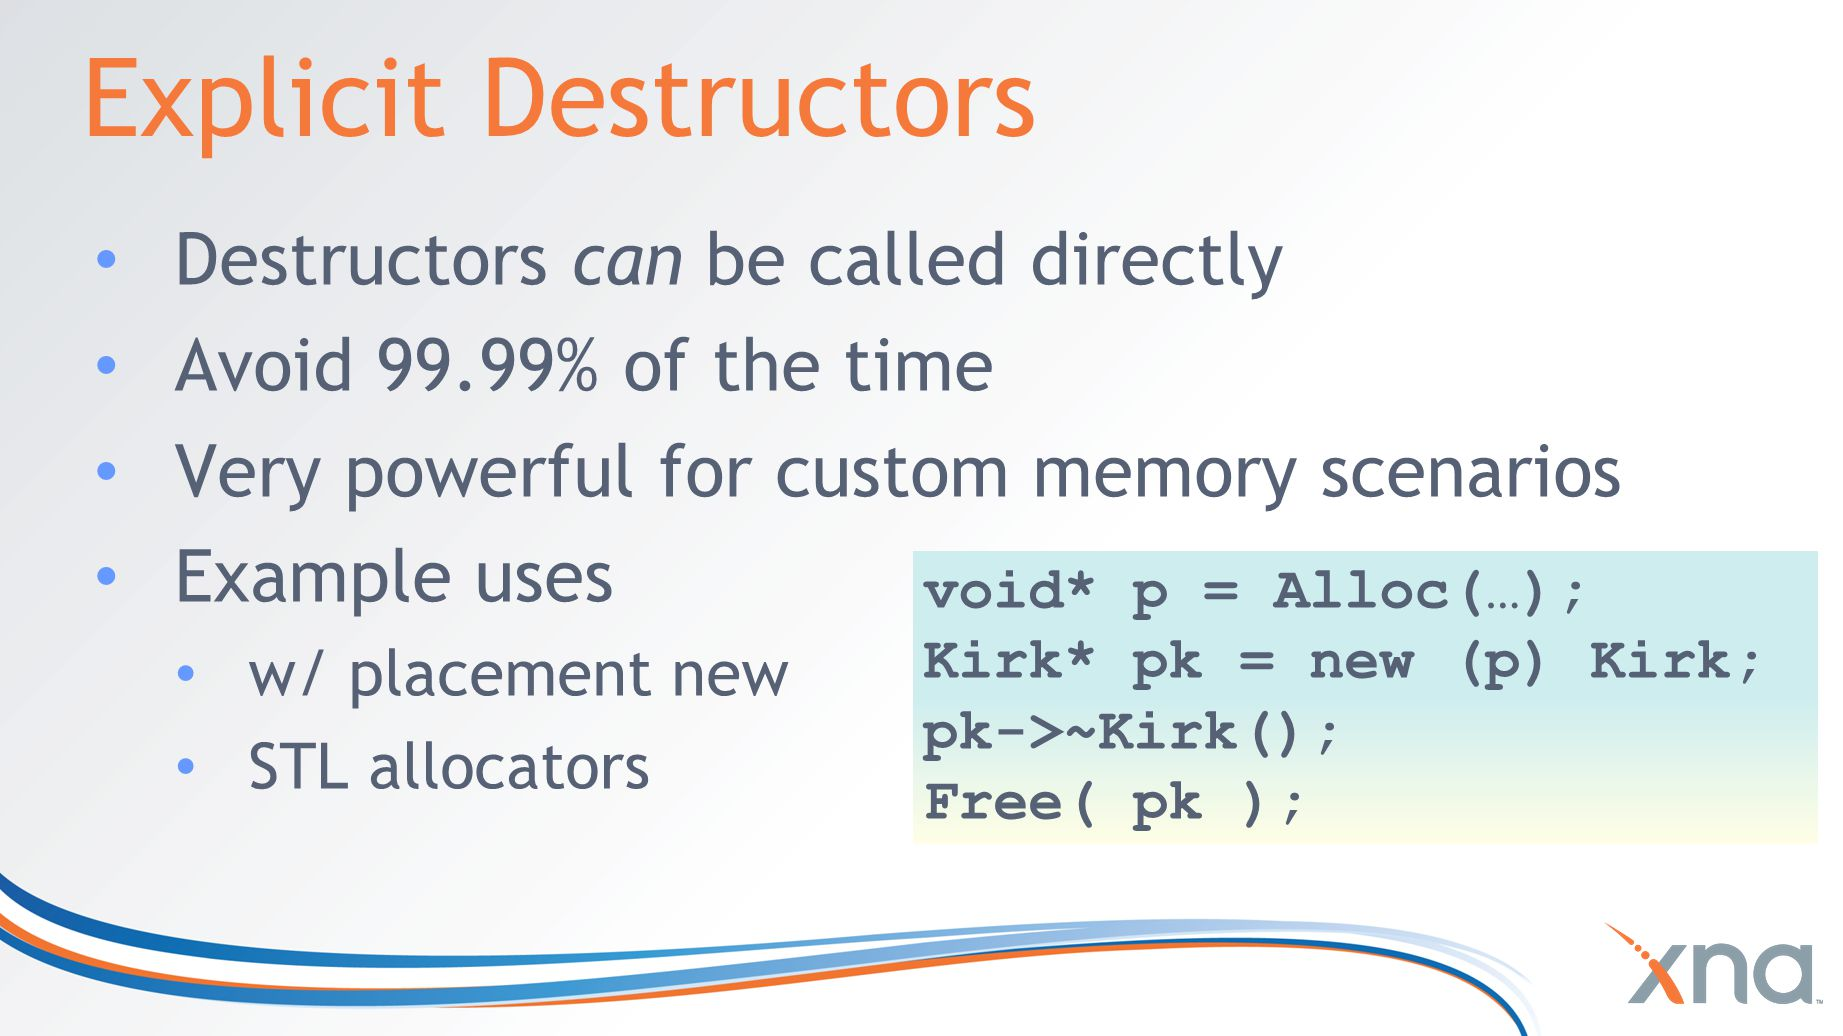 Explicit Destructors Destructors can be called directly Avoid 99.99% of the time Very powerful for custom memory scenarios Example uses w/ placement new STL allocators void* p = Alloc(…); Kirk* pk = new (p) Kirk; pk->~Kirk(); Free( pk );